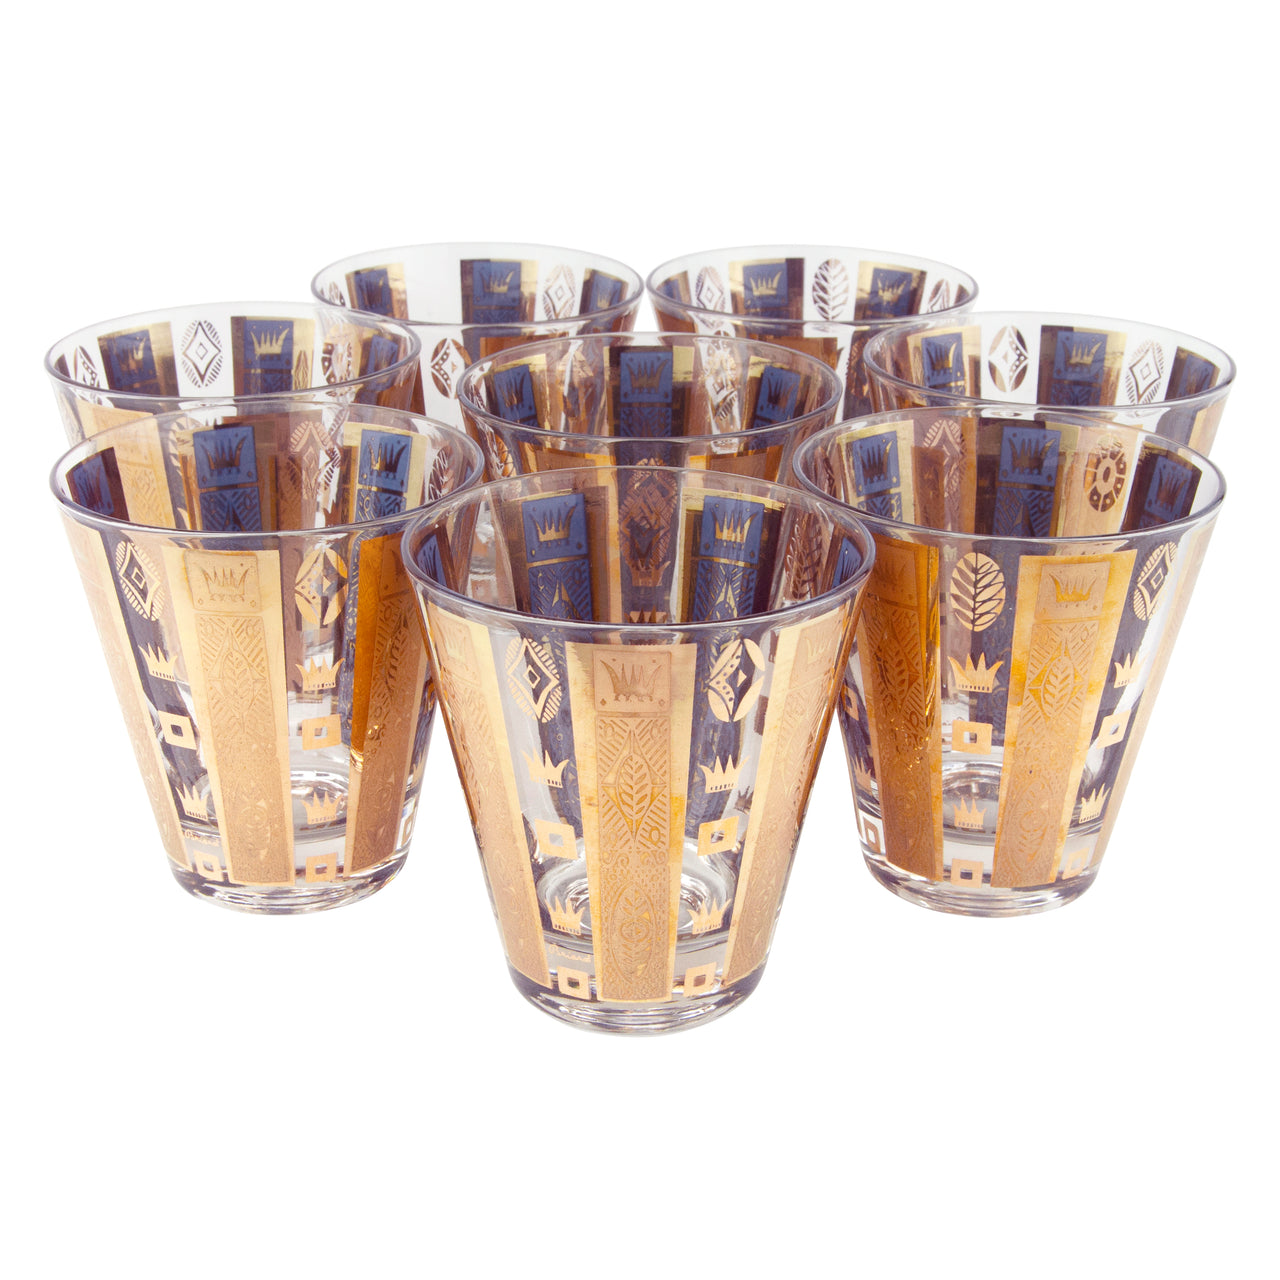 Georges Briard Gold Crowns & Bars Glasses